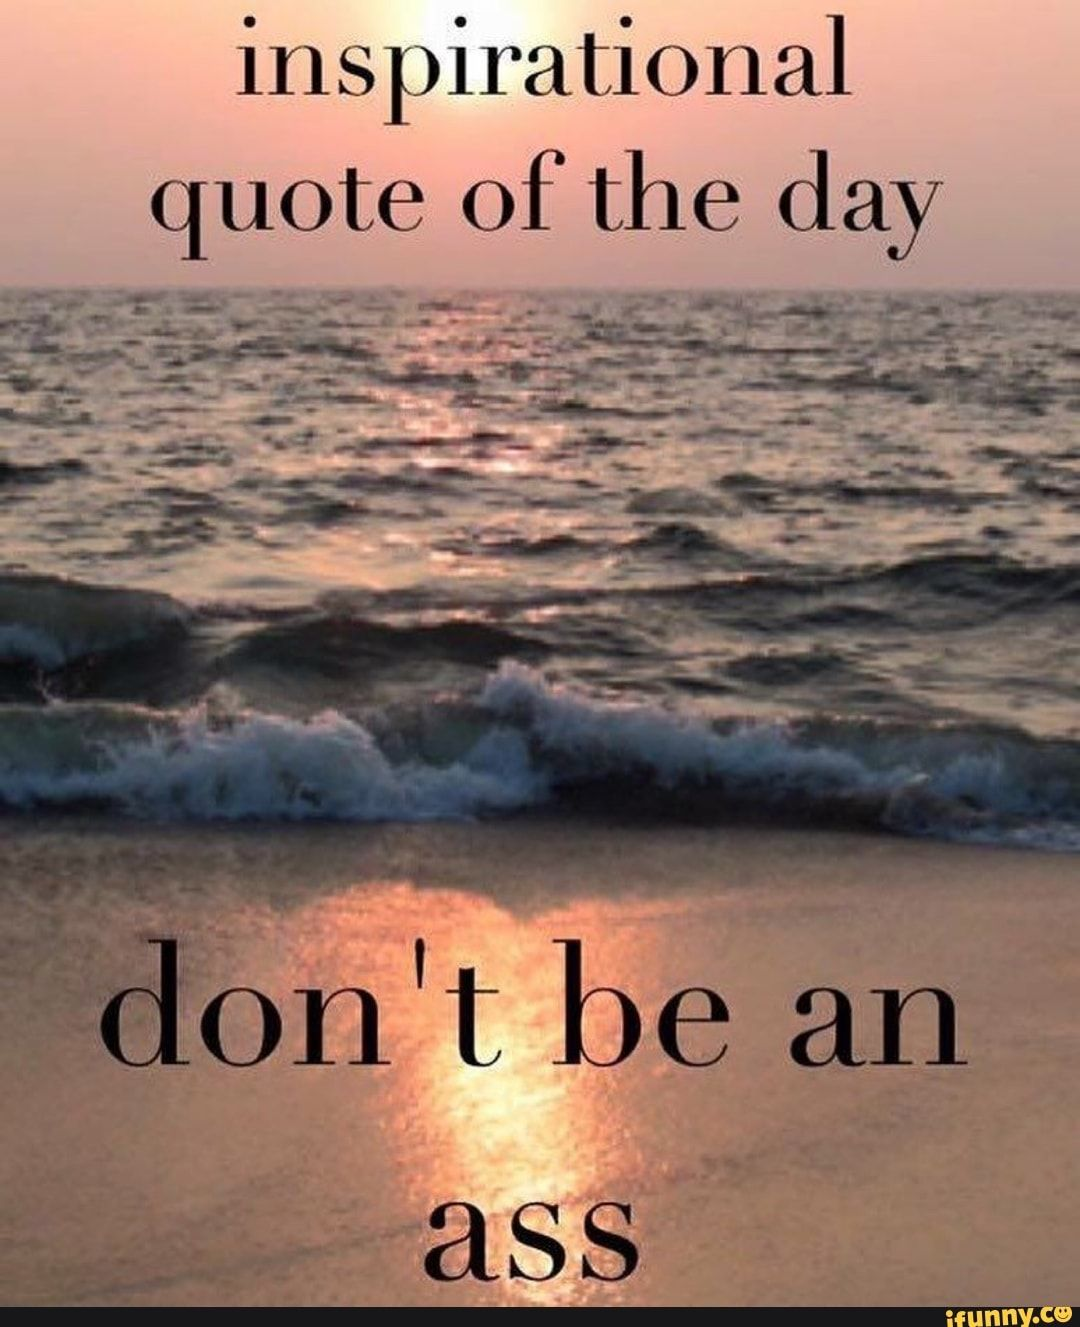 Inspirational On T Be An Ifunny Quote Of The Day Inspirational Quotes Work Quotes